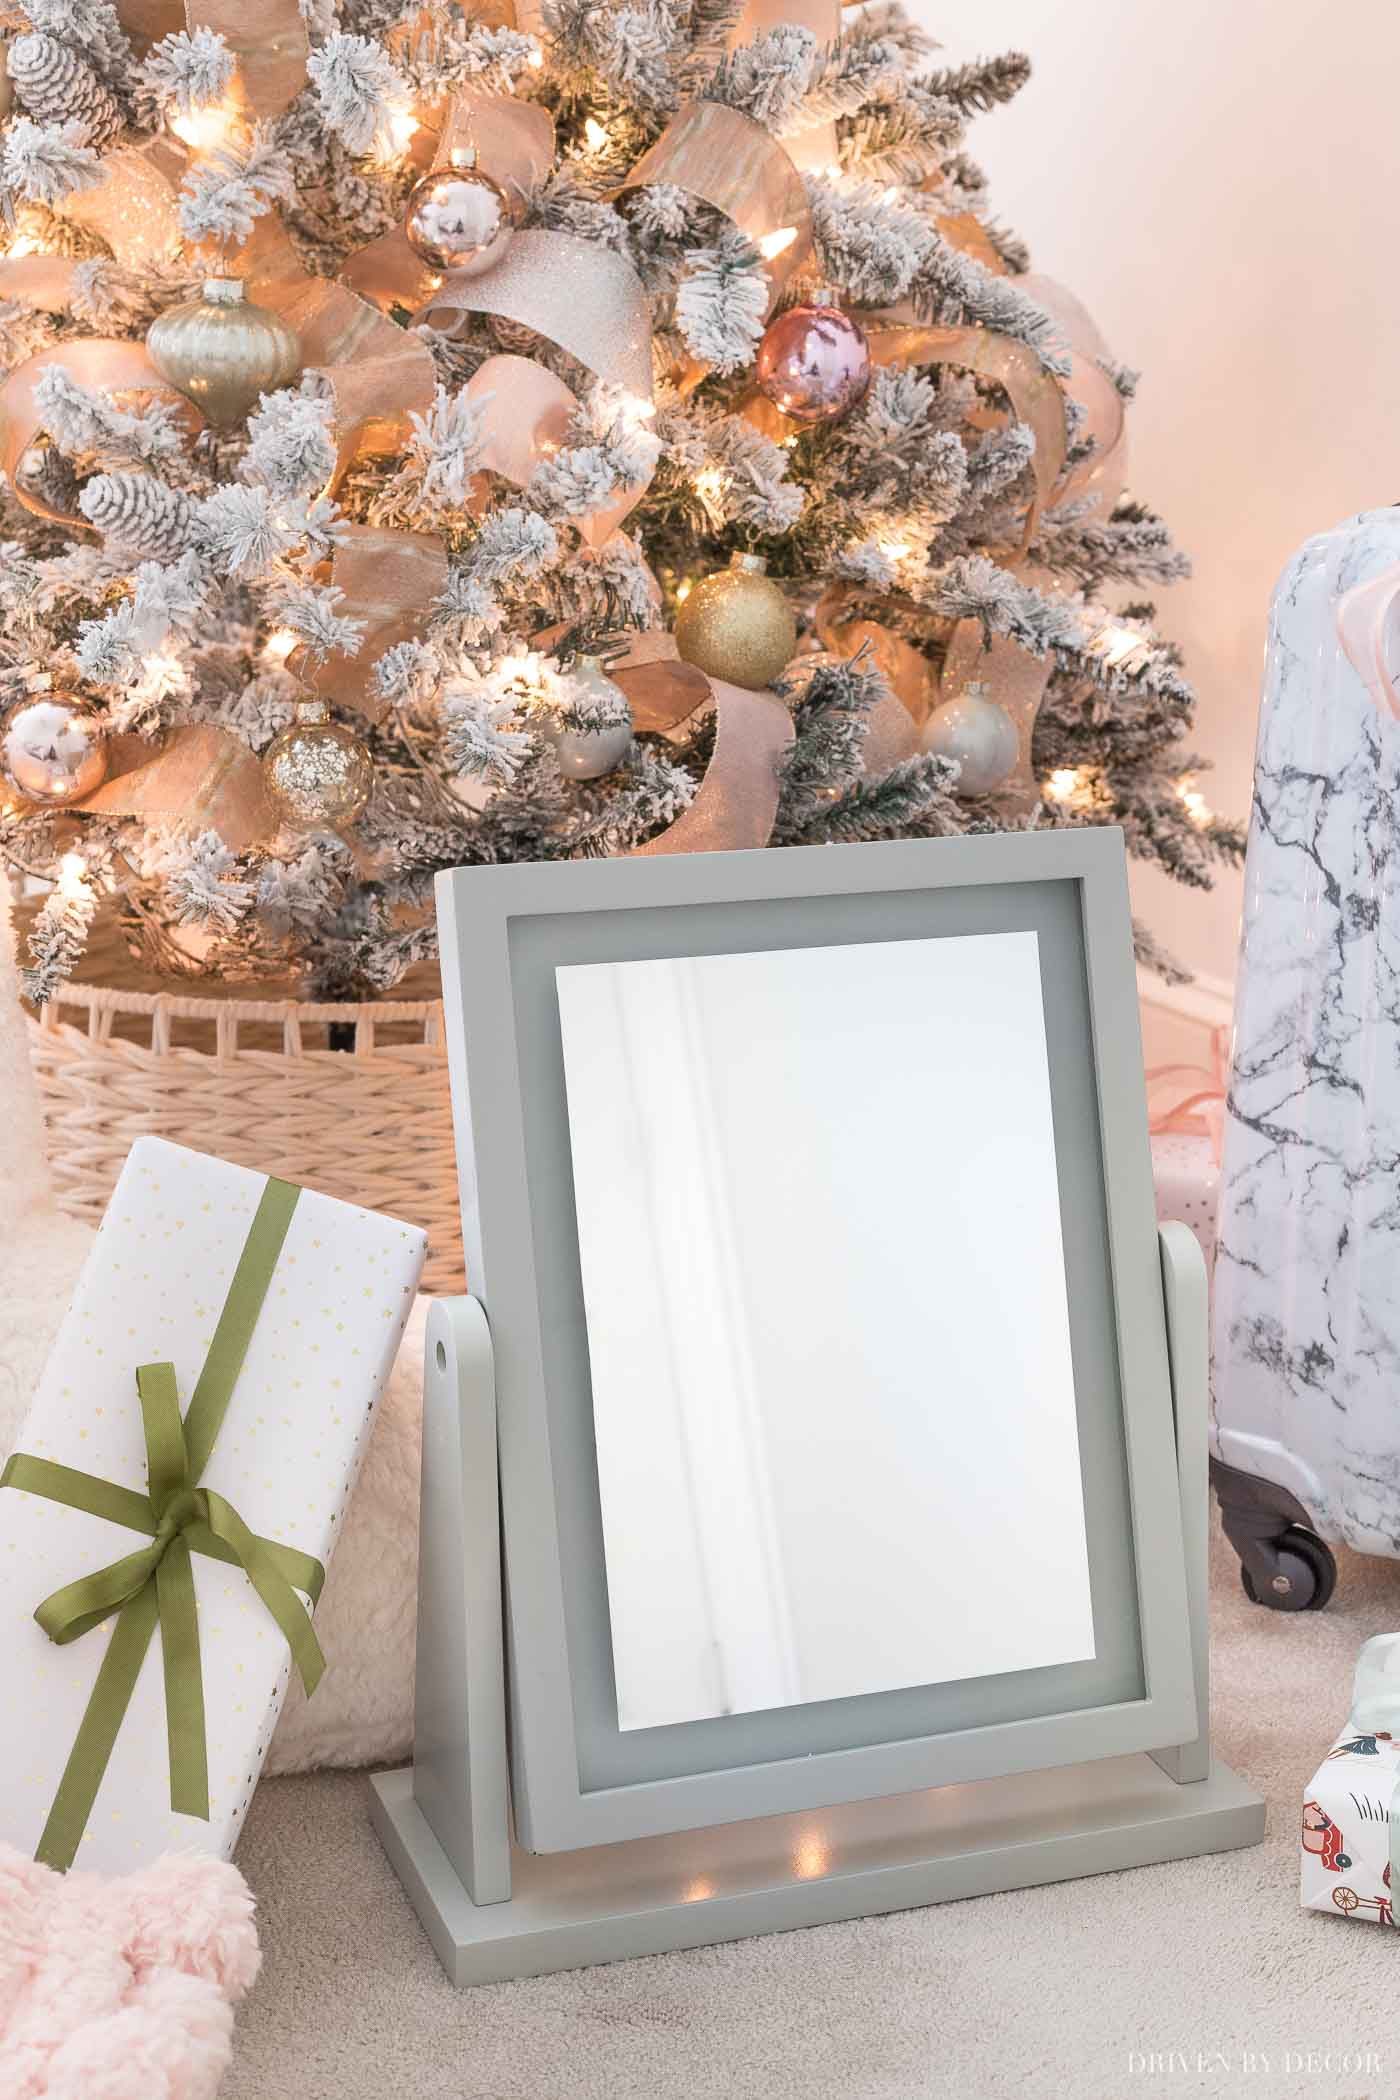 The prettiest light up vanity mirror - such a great Christmas gift idea for teen girls!